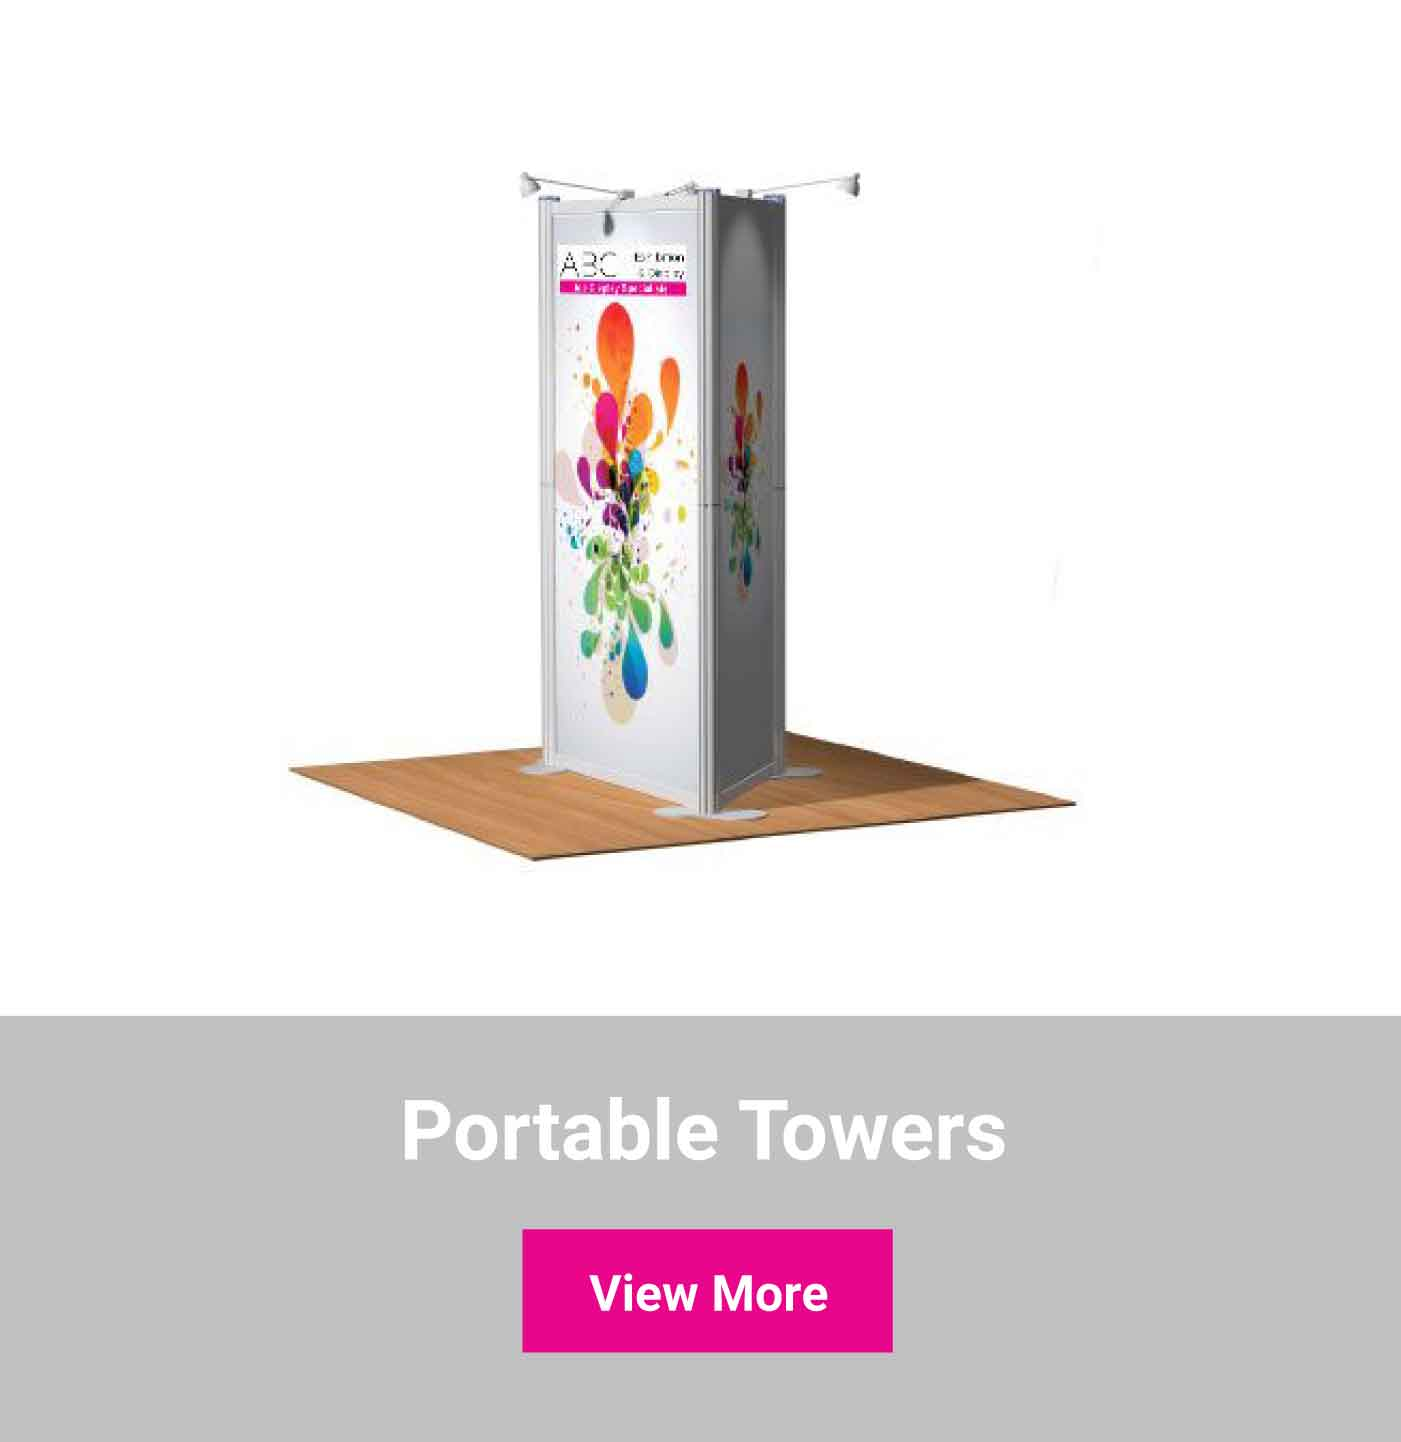 Shop portable towers